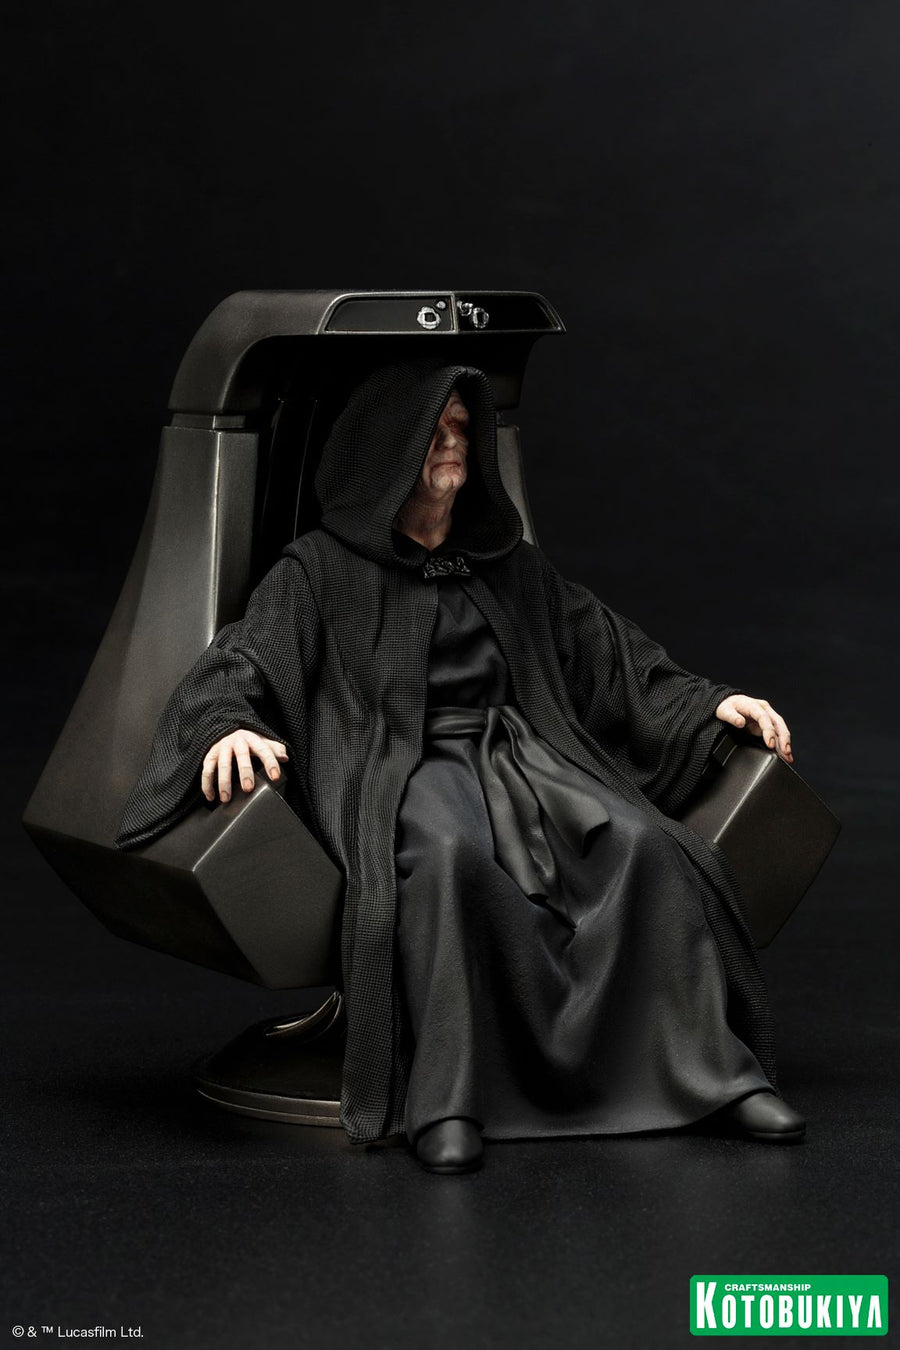 Star Wars Kotobukiya Artfx+ The Emperor 1:10 Scale Statue 2nd Edition Pre-Order